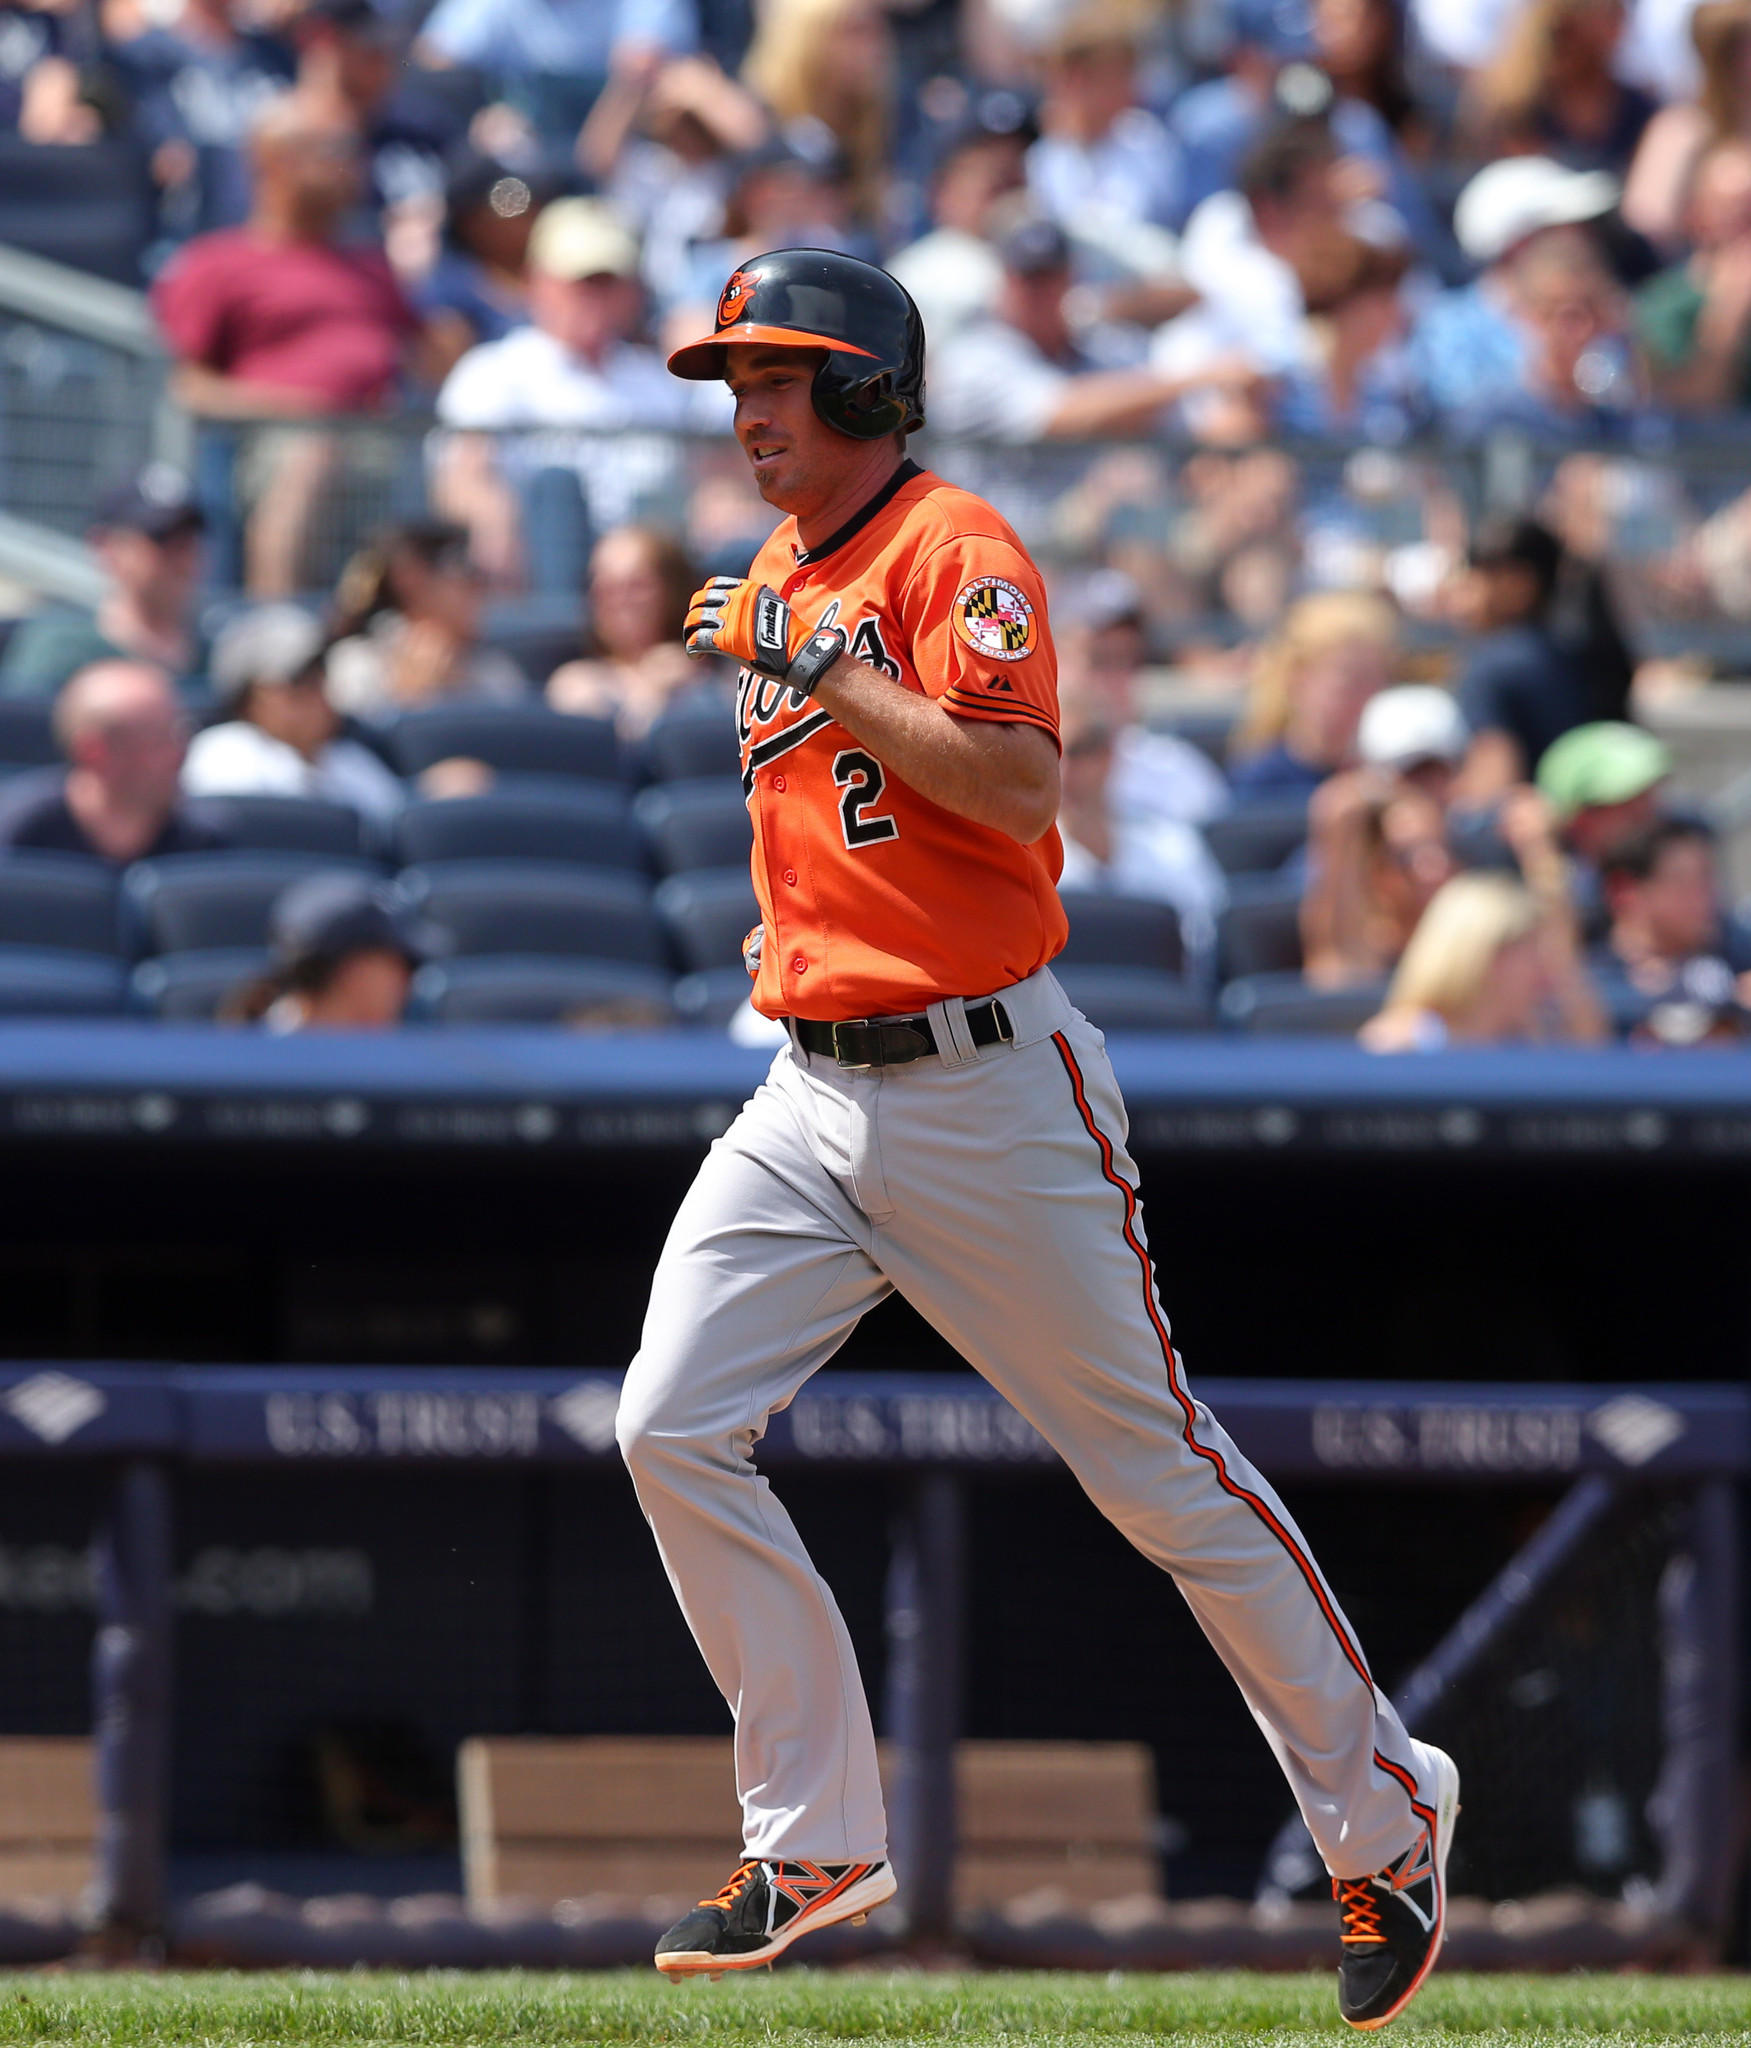 Orioles shortstop J.J. Hardy rounds the bases after hitting a solo home run against the New York Yankees during the eighth inning.